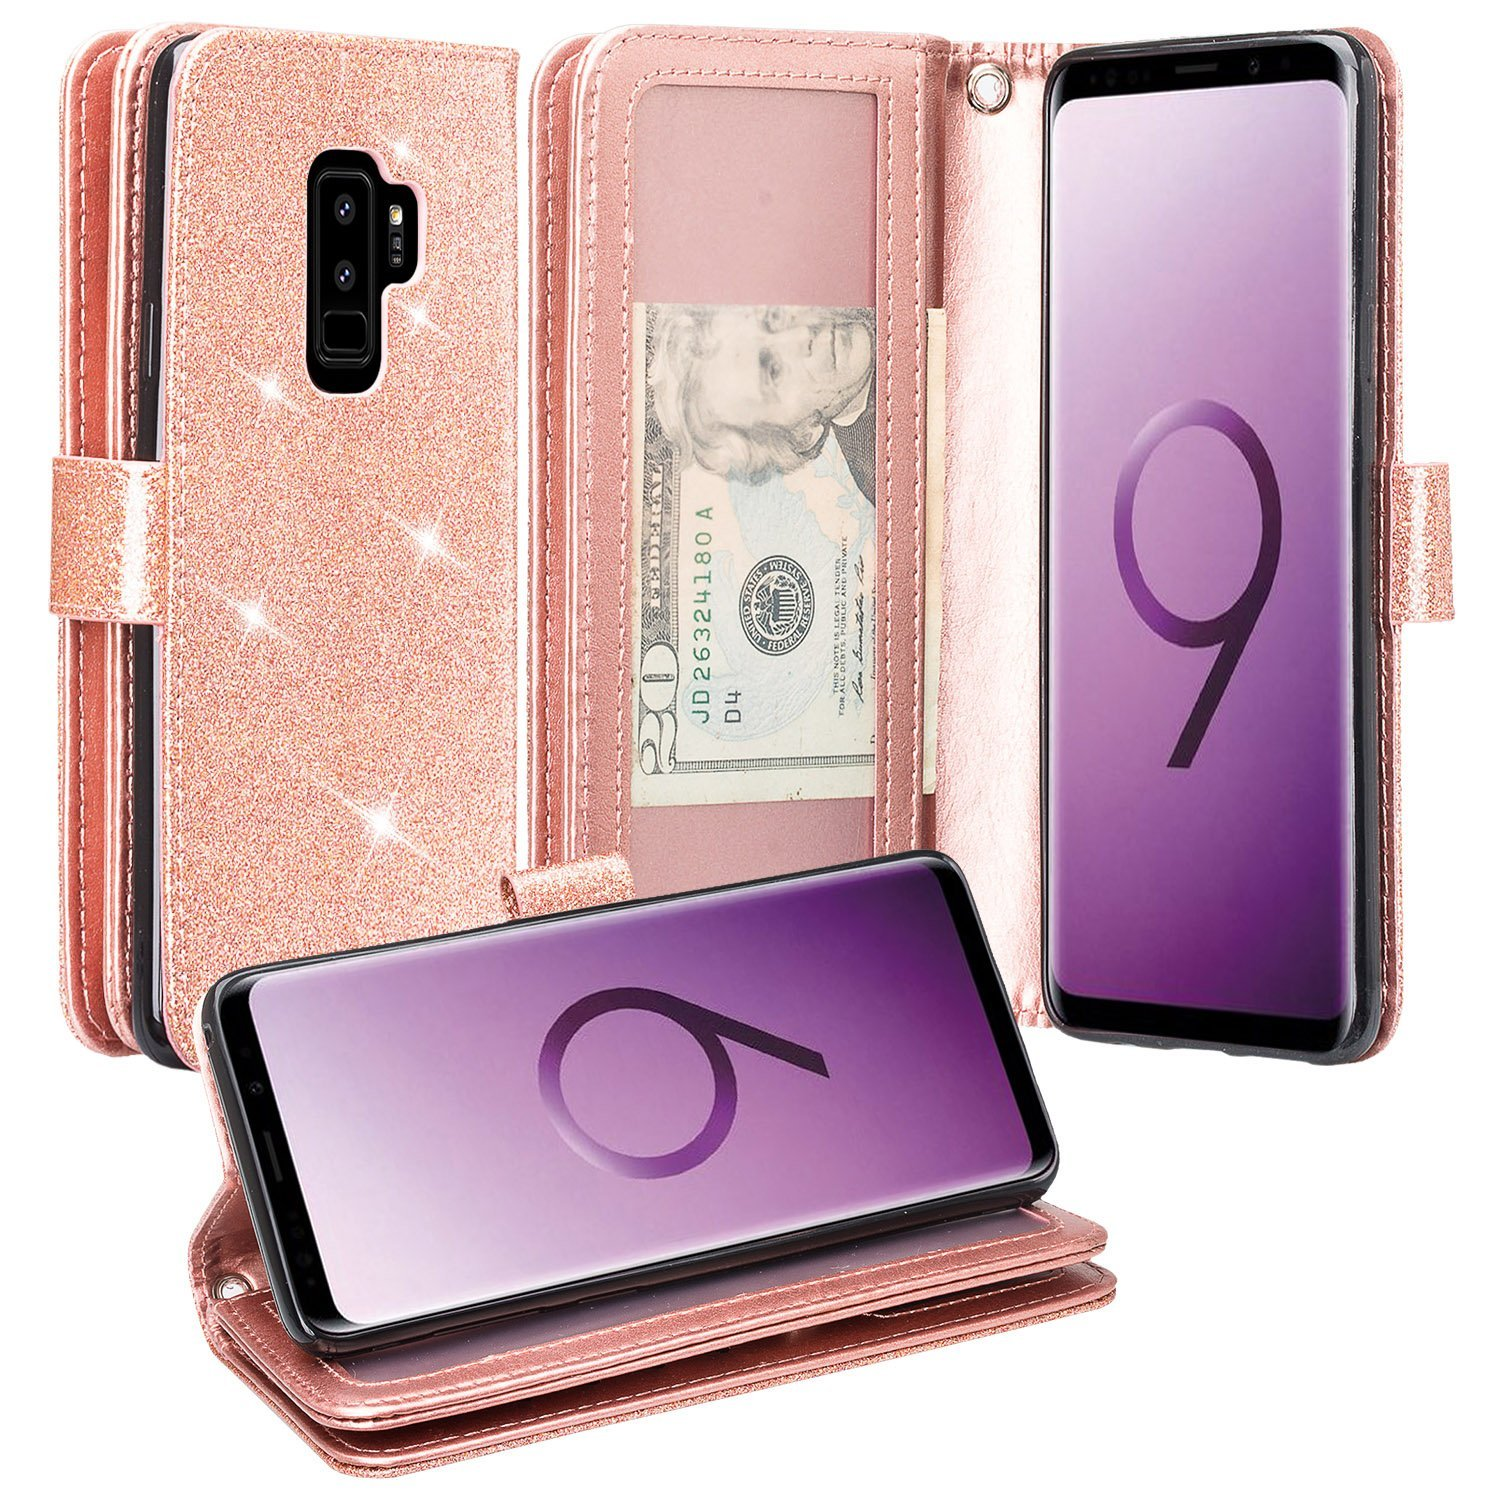 Samsung Galaxy S9 Case, Slim Luxury Bling Glitter Leather Magnetic Flip Kickstand Wallet Cover Shockproof Cover - Rose Gold